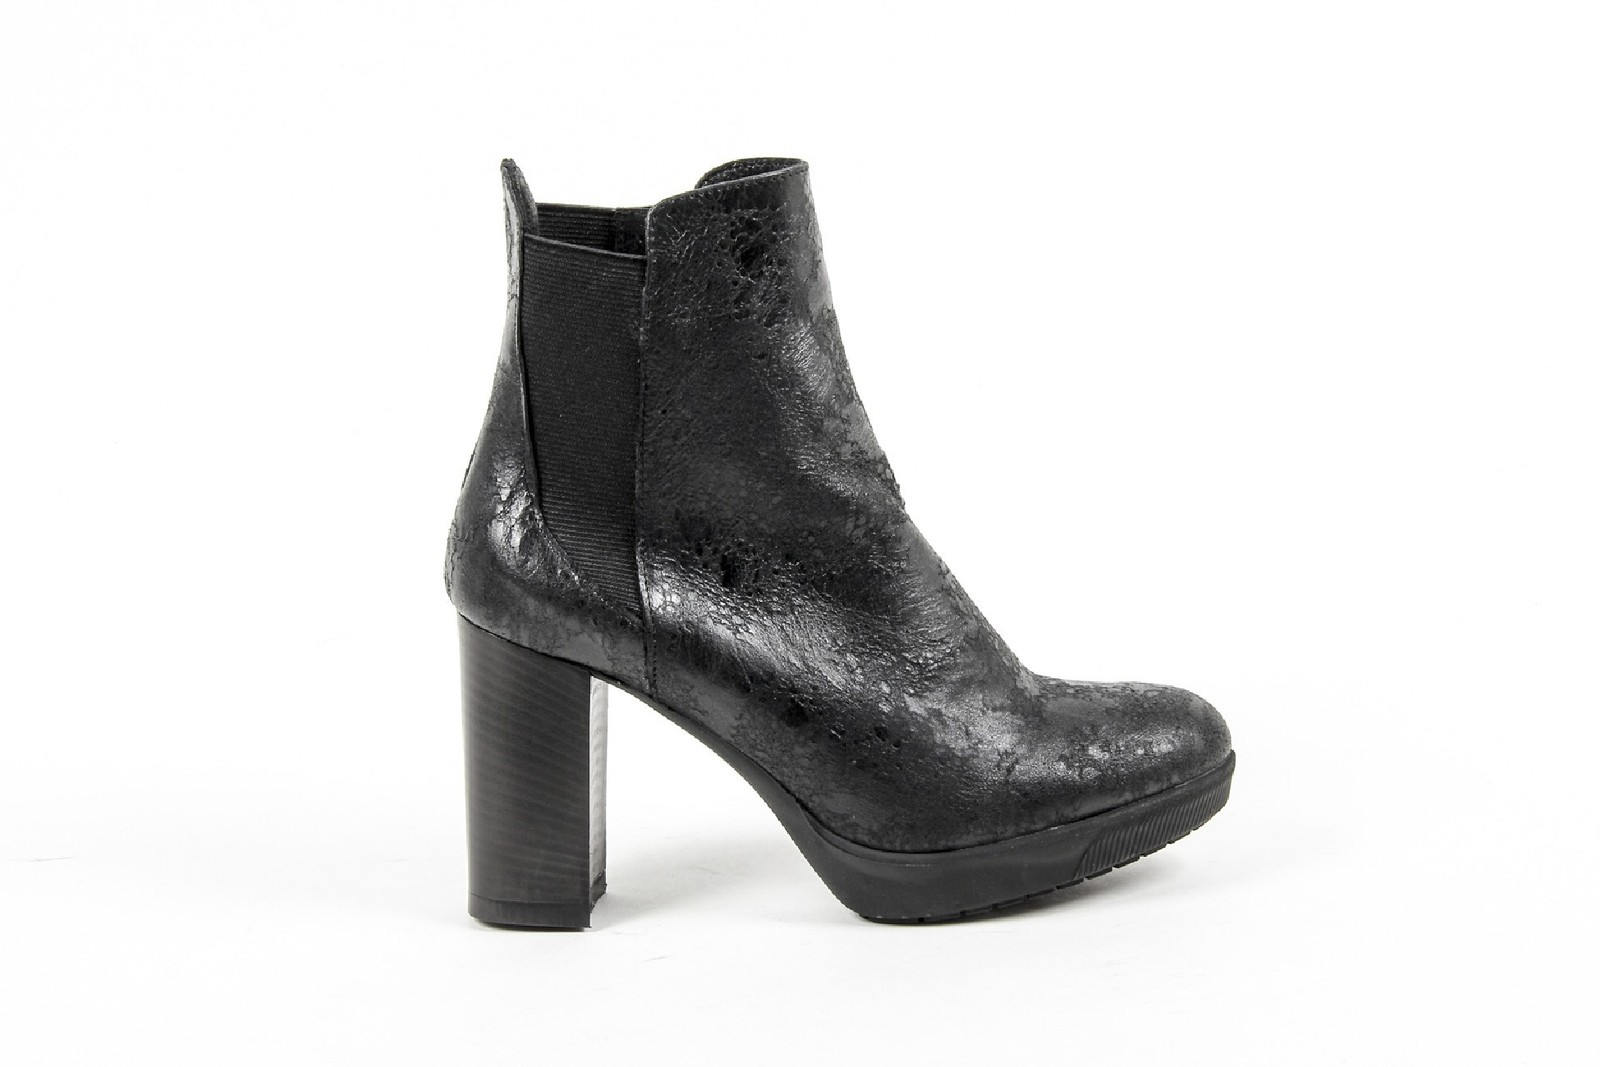 Primary image for V 1969 Italia Womens Ankle Boot C22 VITELLO NERO